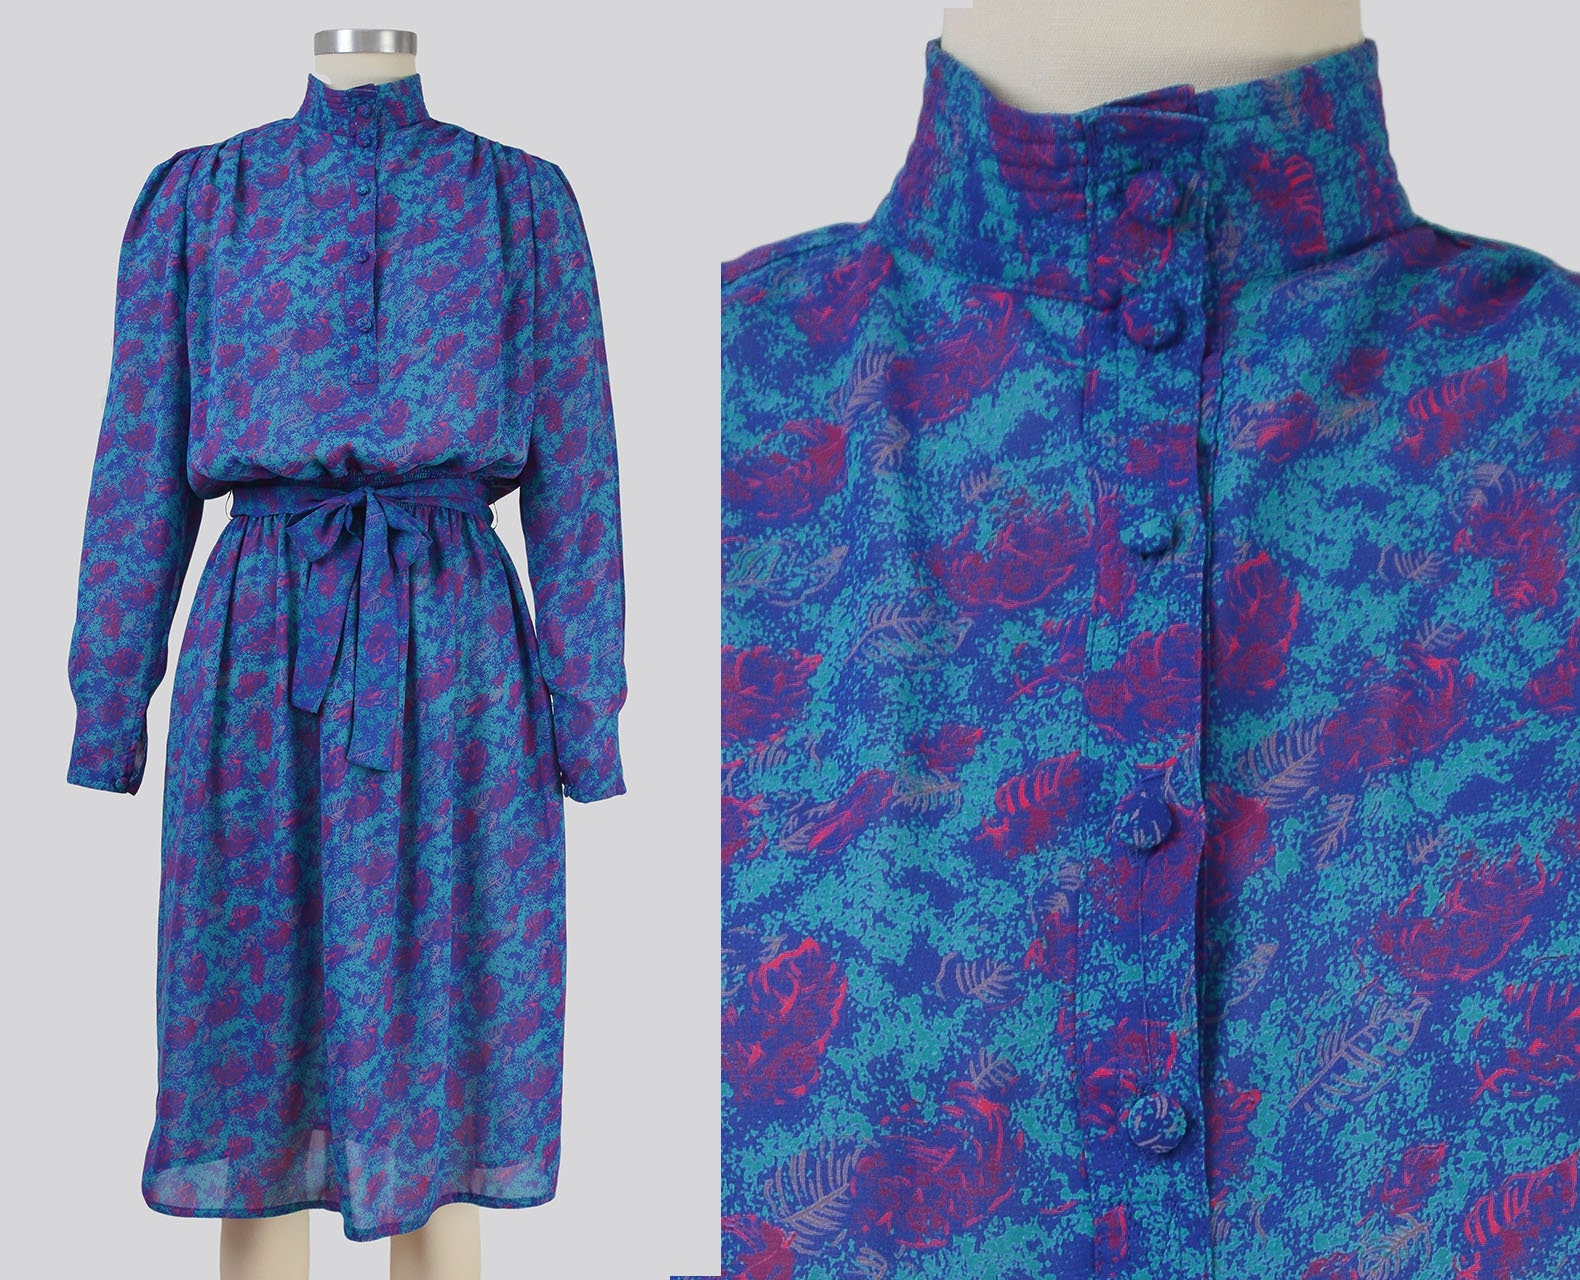 80s Dresses | Casual to Party Dresses Vintage 80S Blue Abstract Leaf Print Dress  Semi Sheer Blouson Secretary With Tie Belt Size Xs S $46.00 AT vintagedancer.com